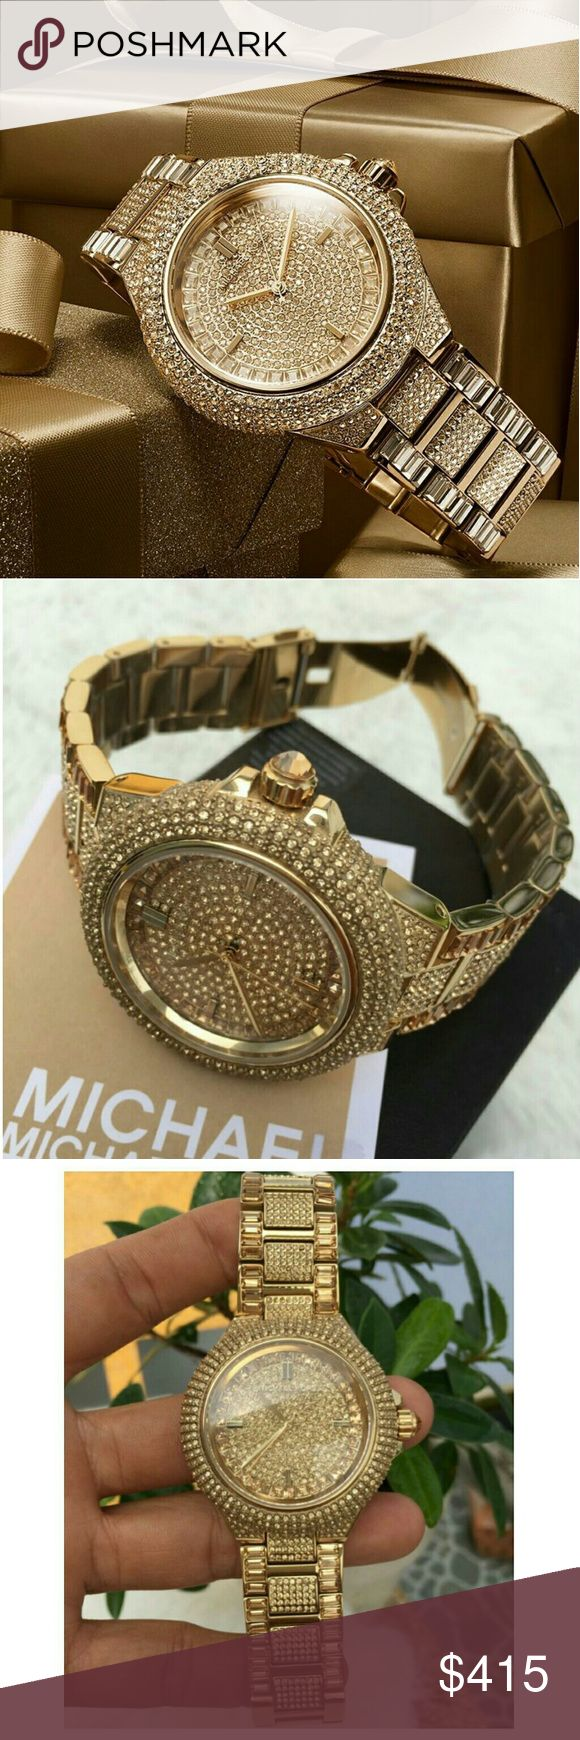 NWT Michael Kors gold Glitz pave cystal watch Brand New Michael Kors Gold Tone Pave Glitz Ladies Watch  PRICE  $415.00 . AUTHENTIC WATCH  . AUTHENTIC BOX  . AUTHENTIC MANUAL    SHIPPING  PLEASE ALLOW FEW BUSINESS DAYS FOR ME TO SHIPPED IT OFF.I HAVE TO GET IT FROM MY STORE.   THANK YOU FOR YOUR UNDERSTANDING. Michael Kors  Accessories Watches